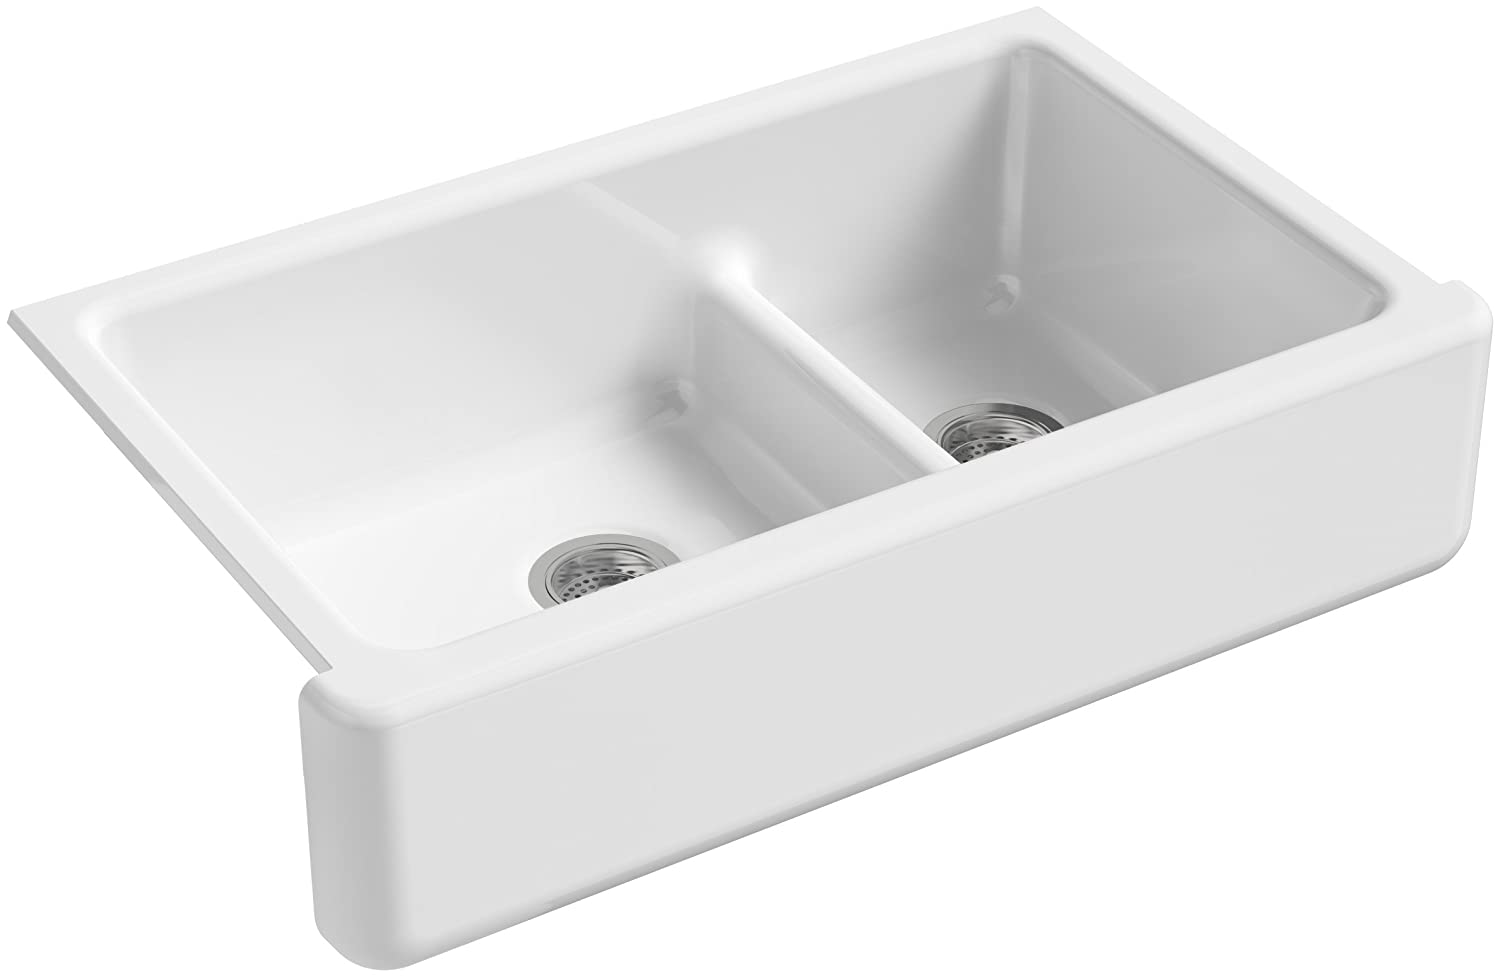 White Apron Sink : Short Apron This again is a single basin sink but with shorter apron ...